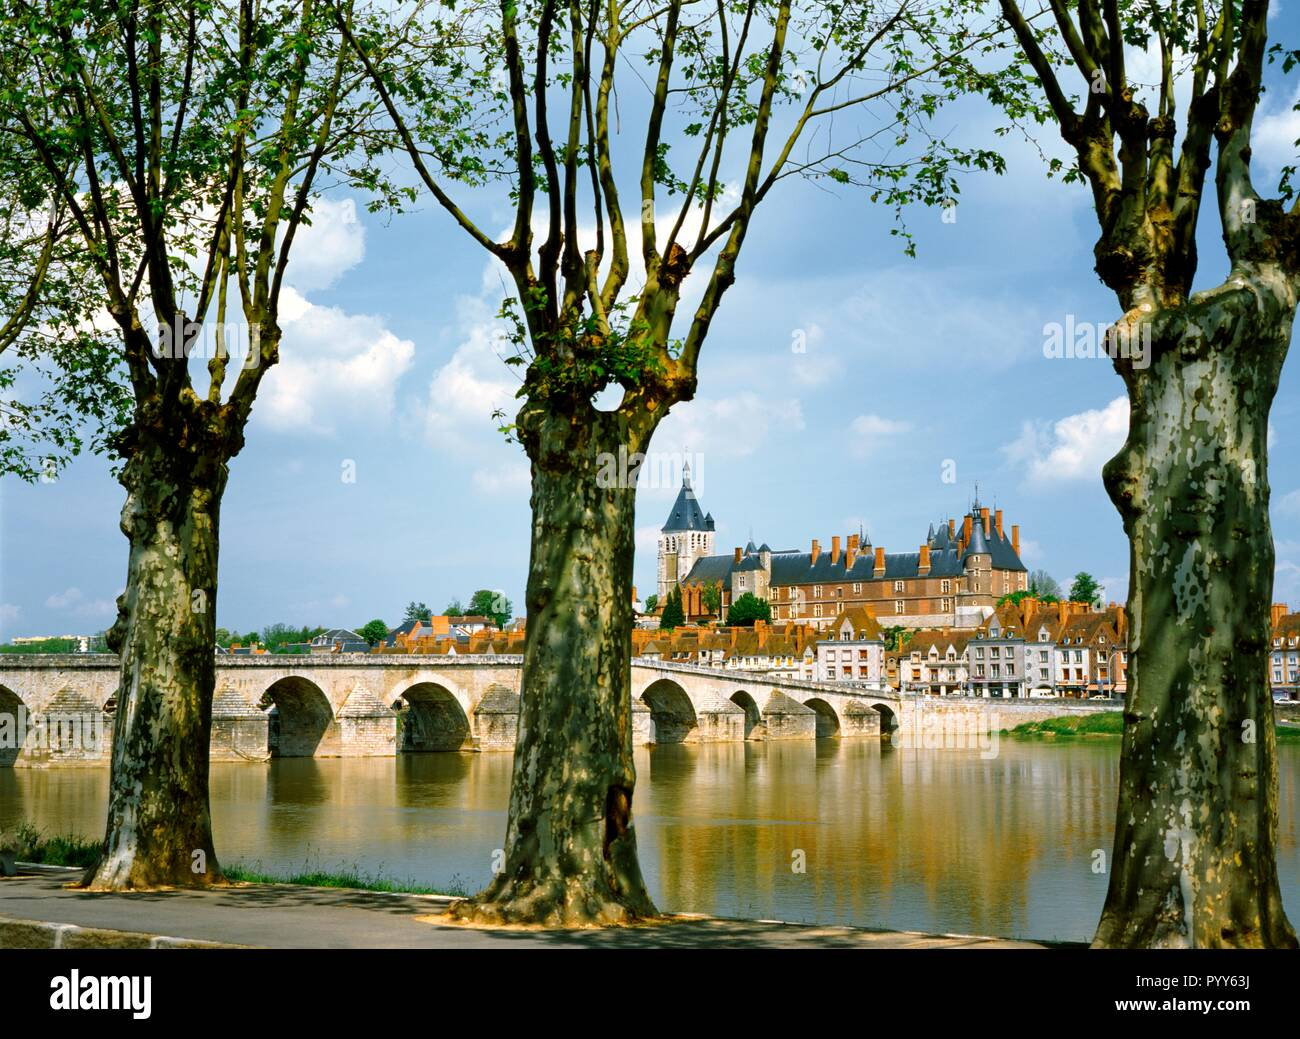 Over the River Loire to the 16 C. stone bridge, royal Chateau and town of Gien in the Loiret departement, France - Stock Image